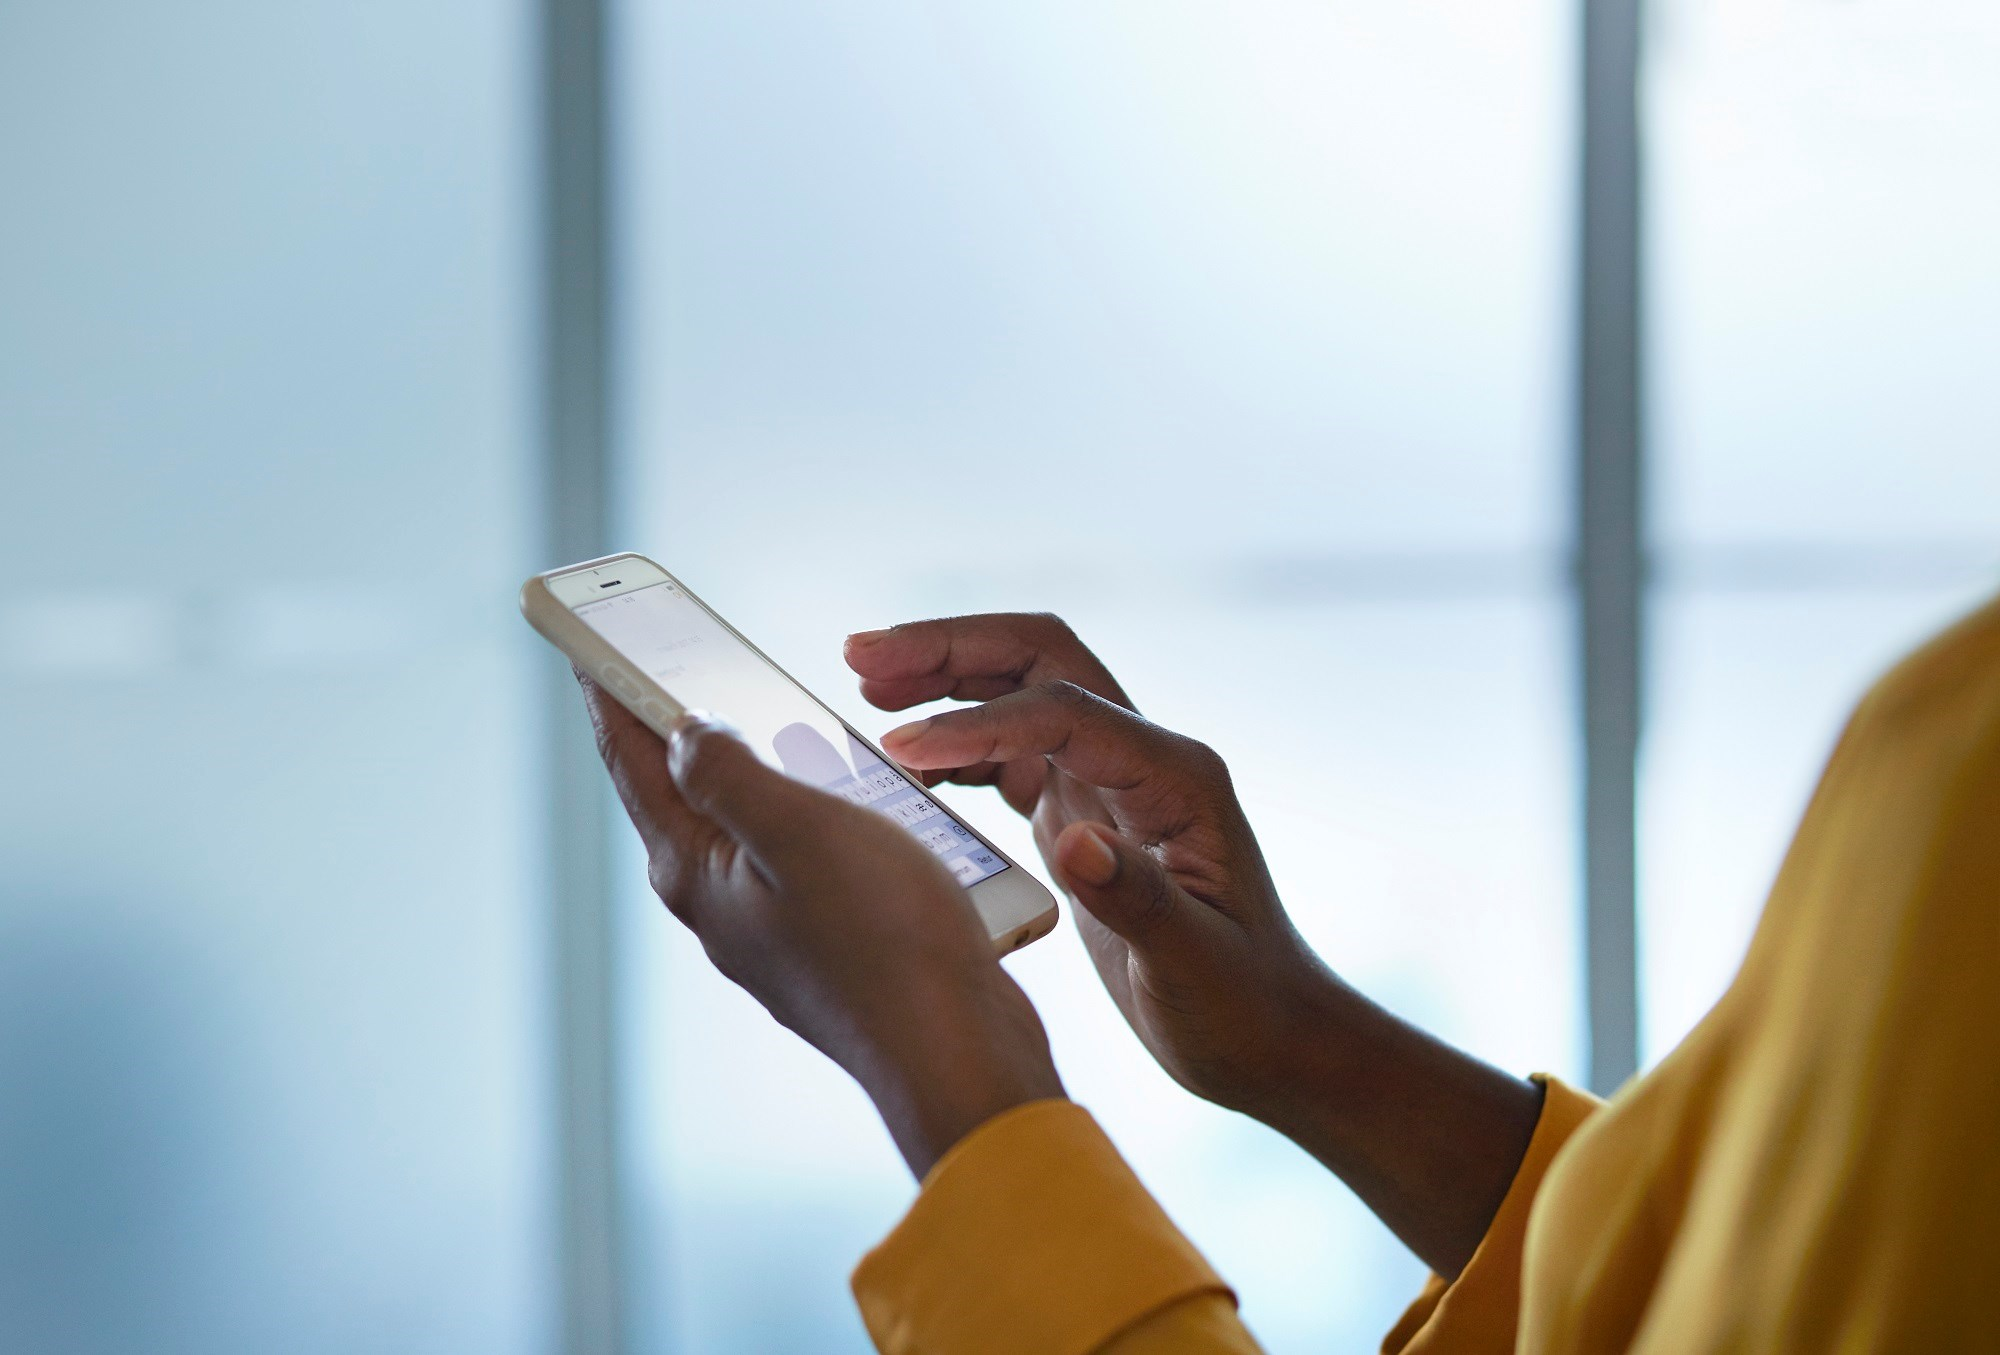 Mobile-Based Application Shows Benefits for Young Patients With Schizophrenia